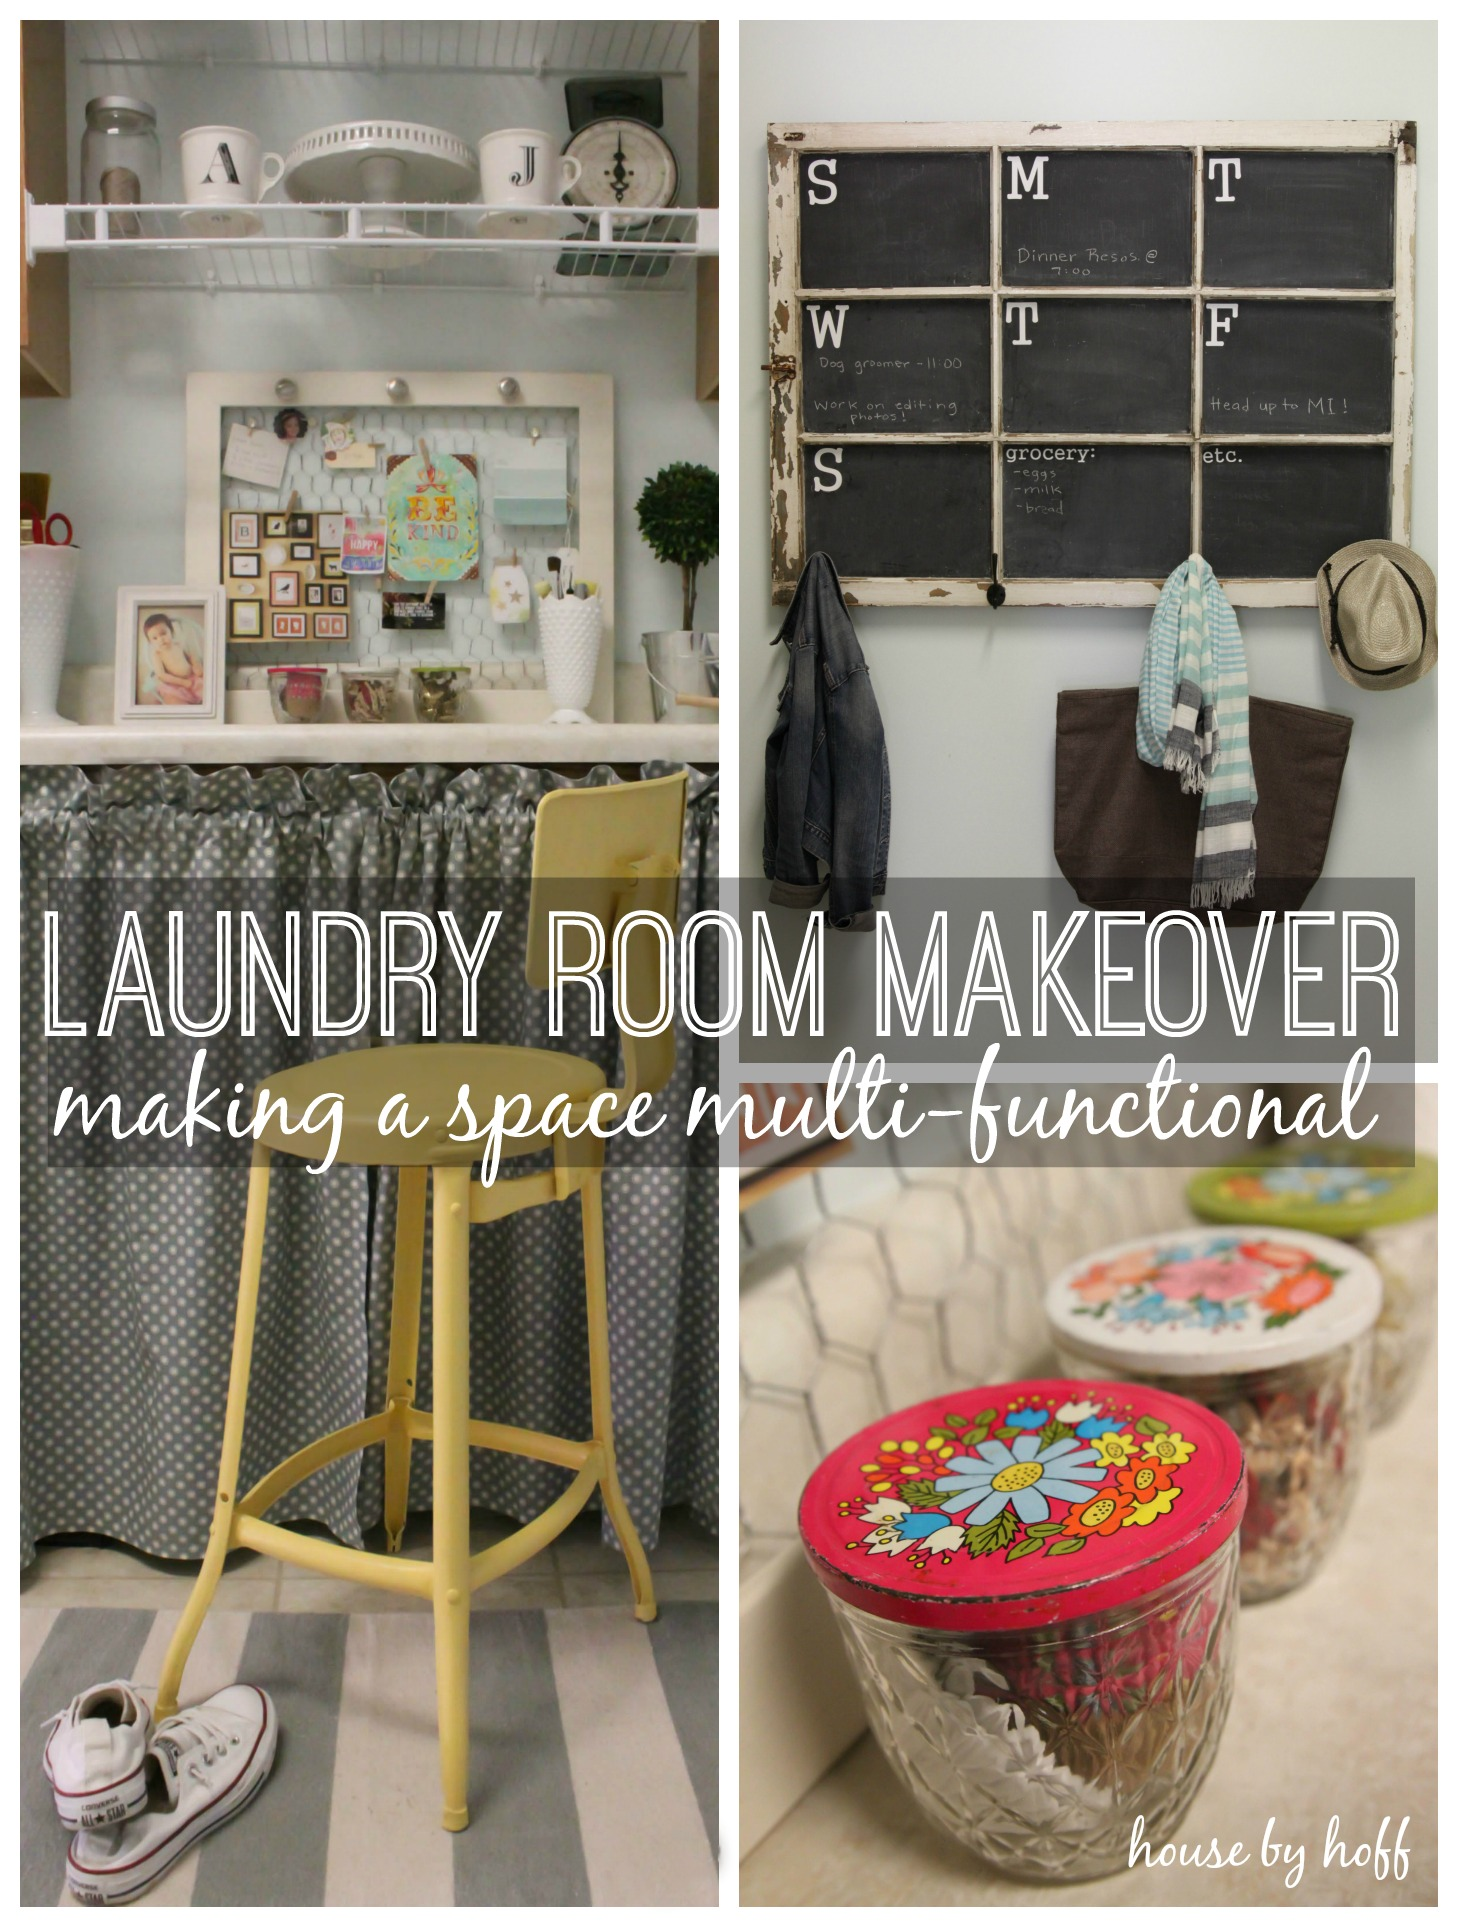 Laundry Room Makeover - House by Hoff